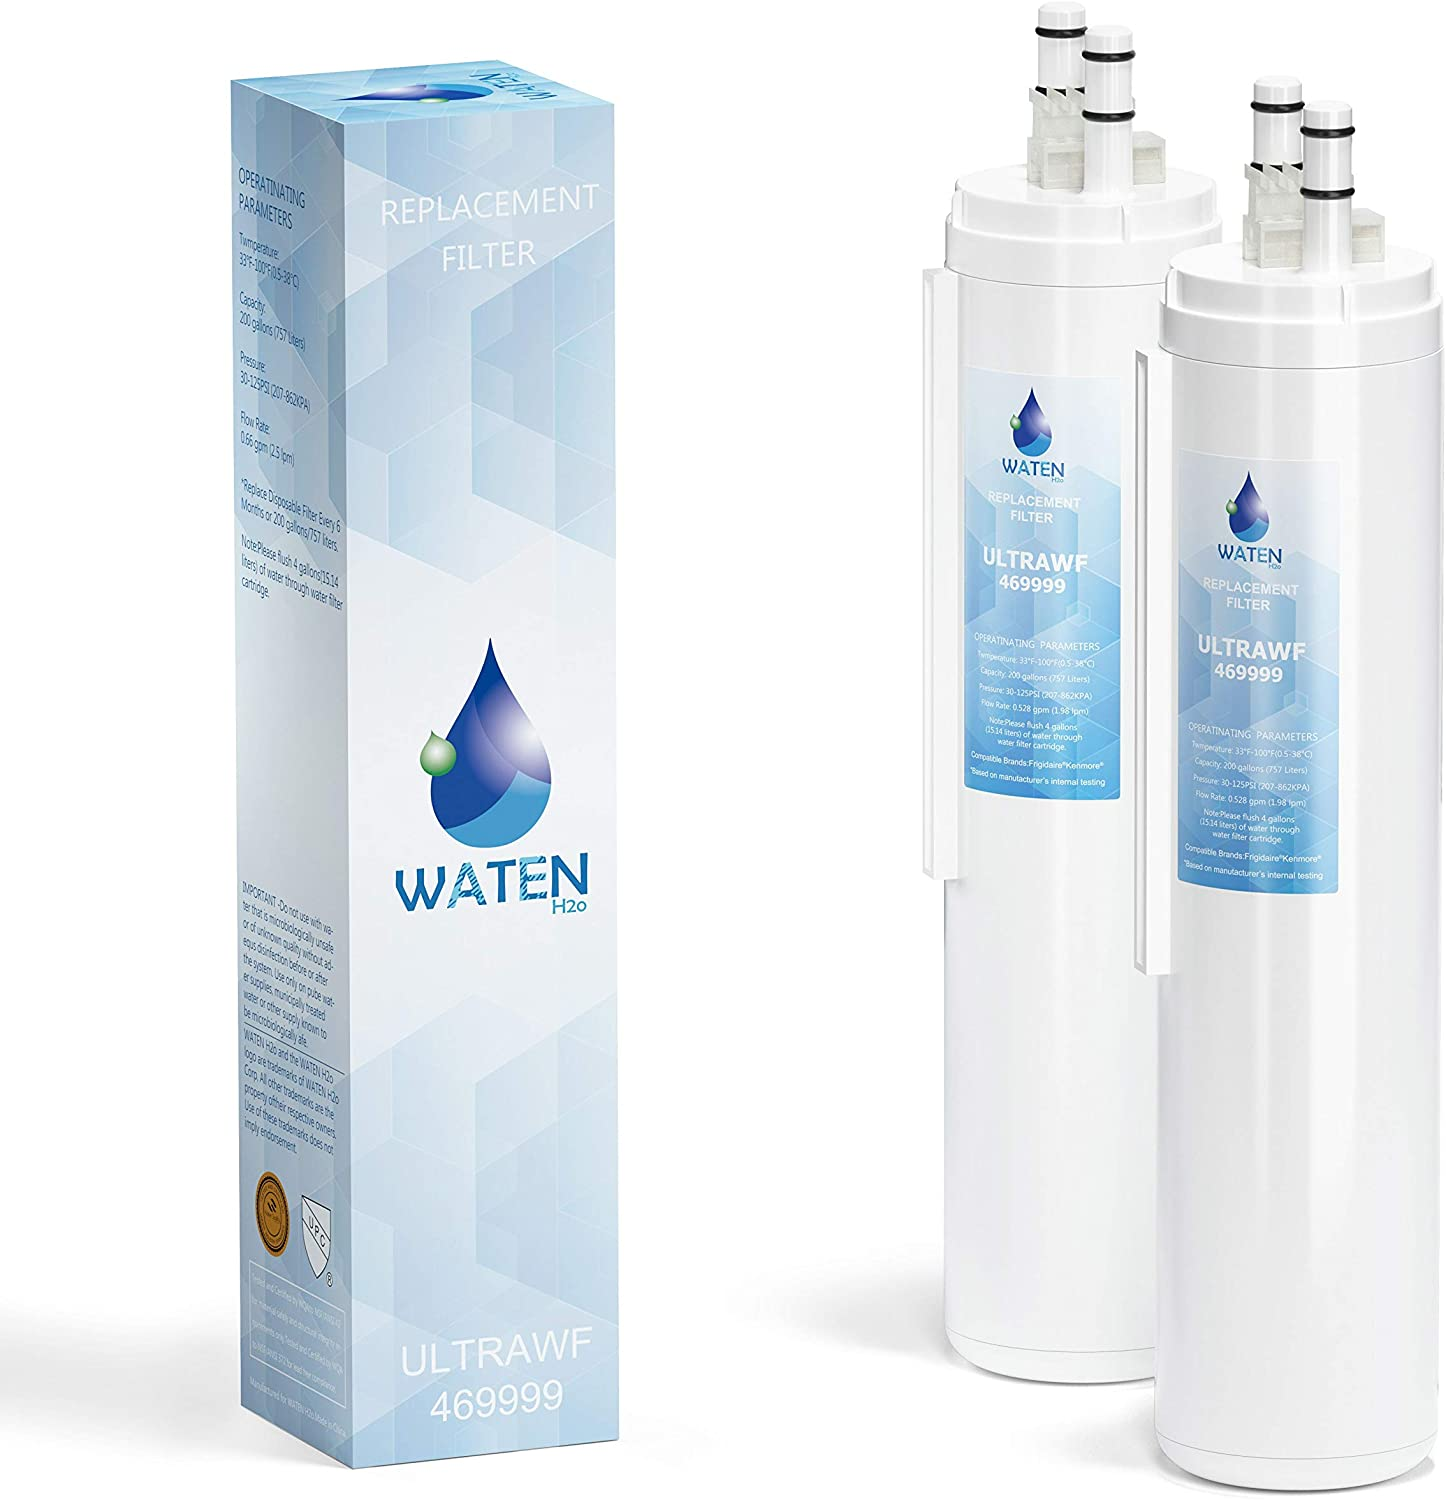 WATEN H2O ULТRAWF Compatible Refrigerator Water Filter Replacement Pure Source Ultra/9999 White-2 Packs